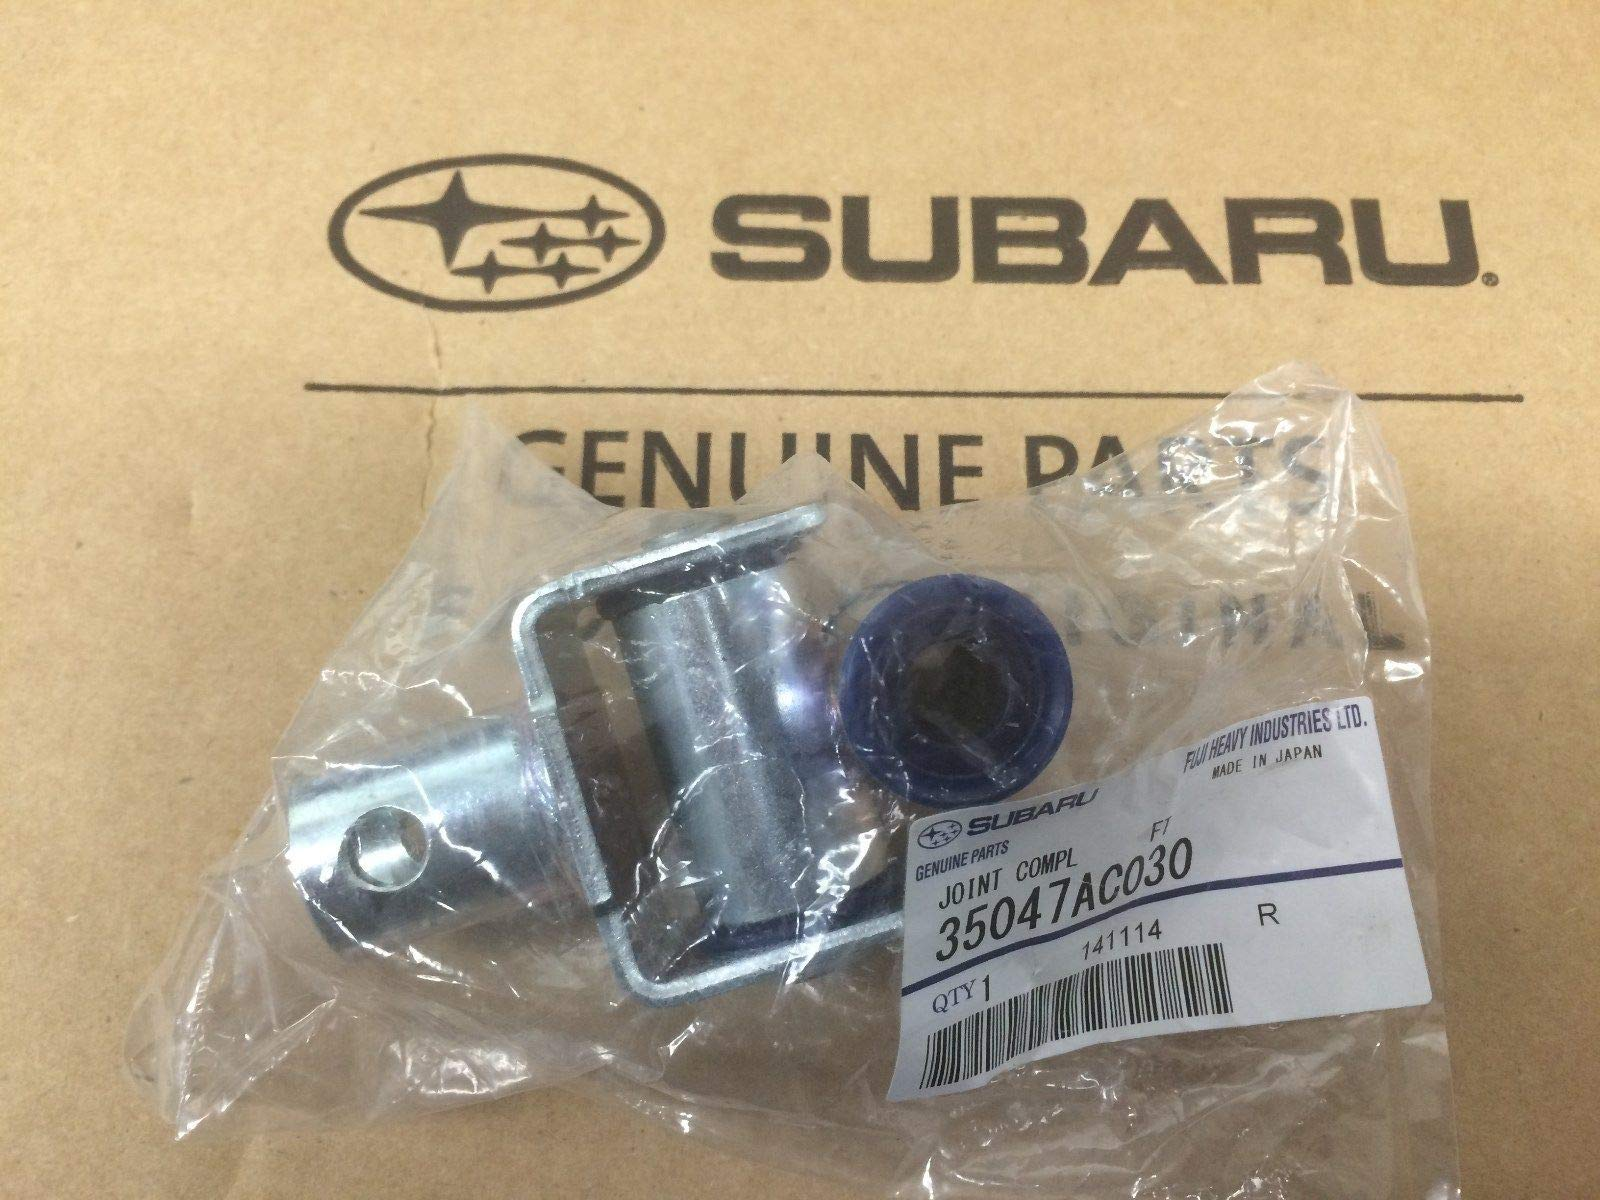 Subaru Genuine 35047AC030 Impreza WRX Legacy Forester Outback Shifter Bushing Linkage Joint